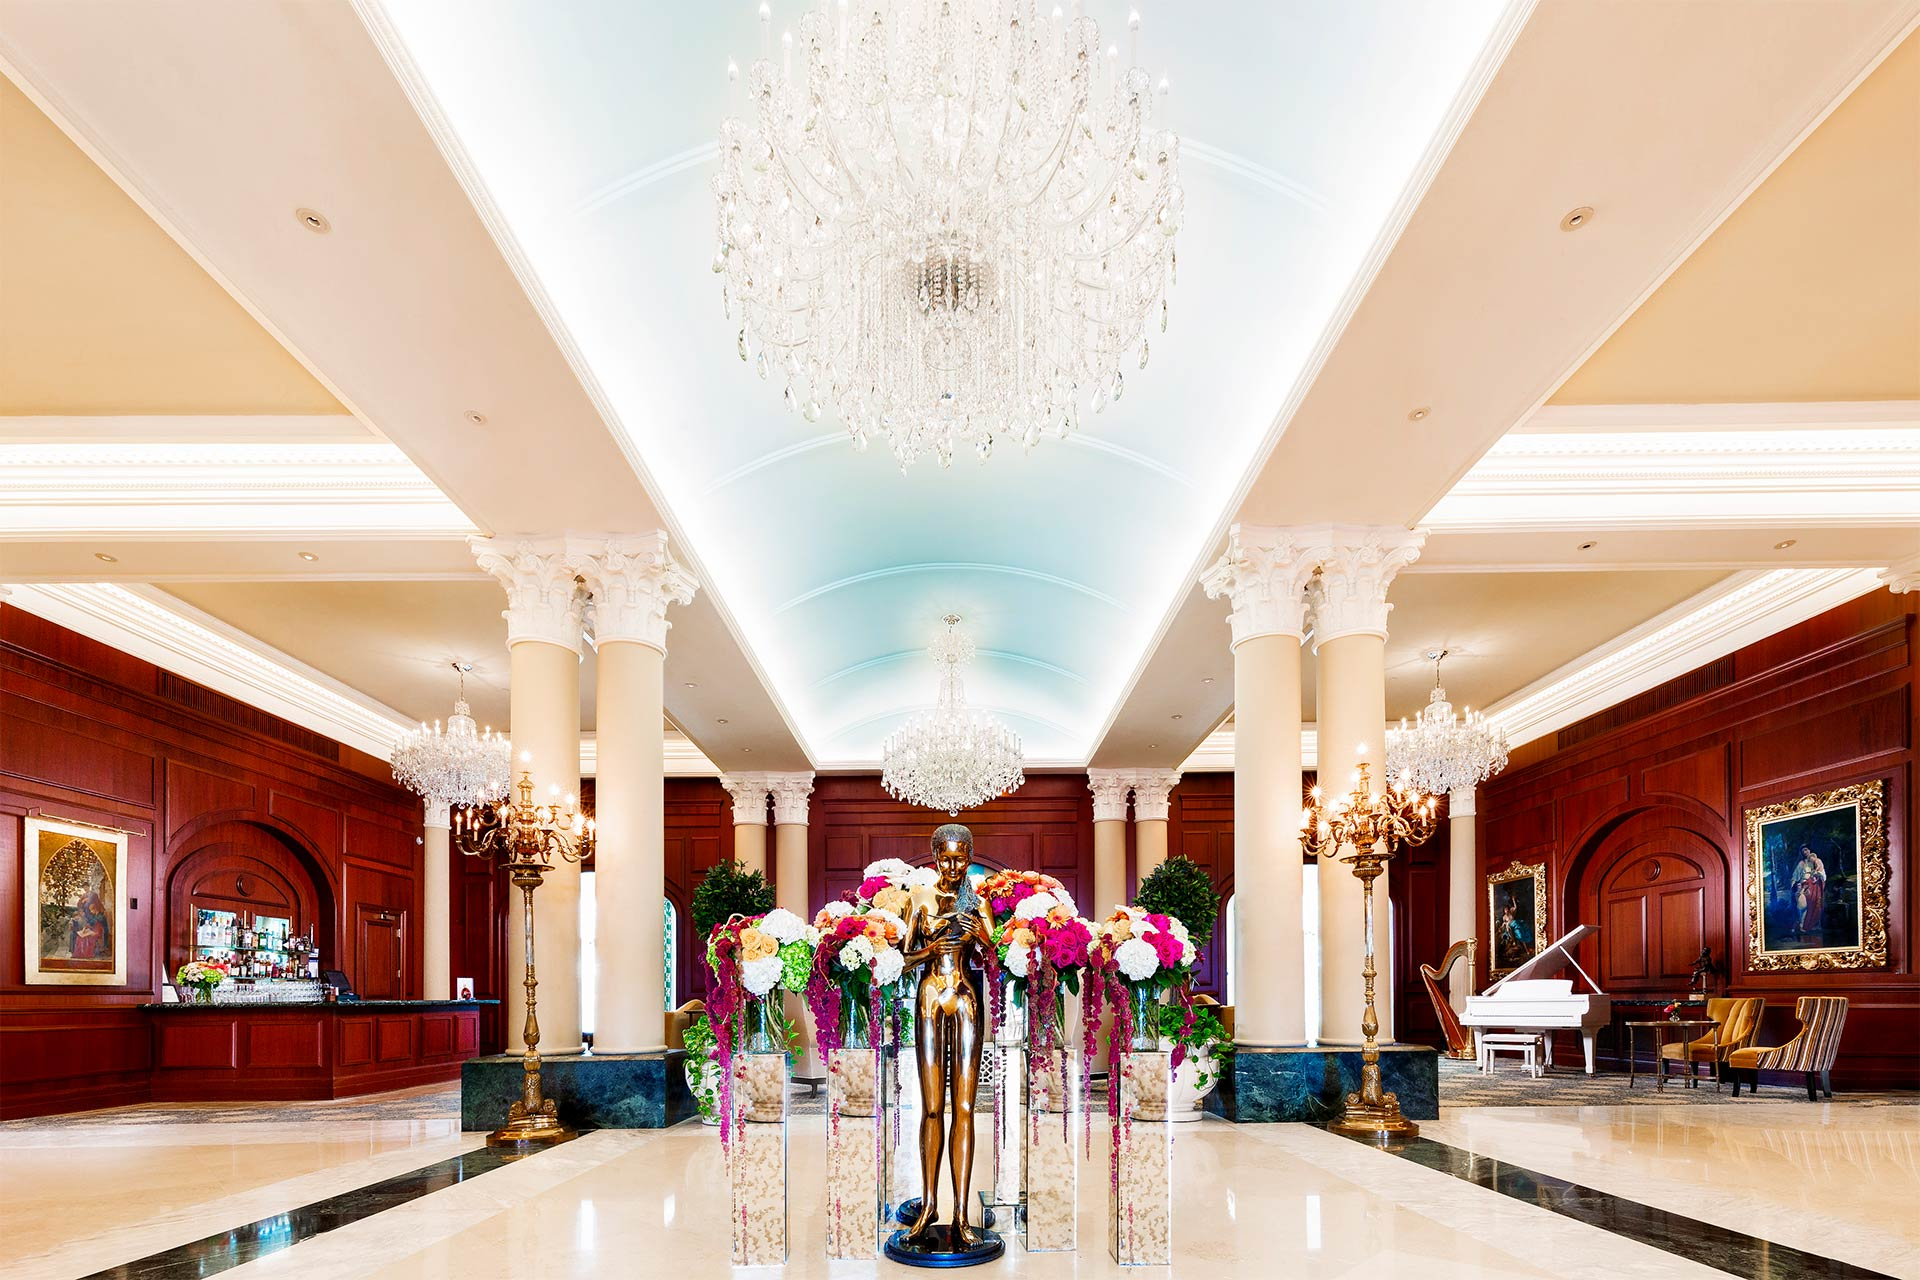 A fancy hotel lobby with a bronze statue of a woman in front and wooden walls and chandeliers above